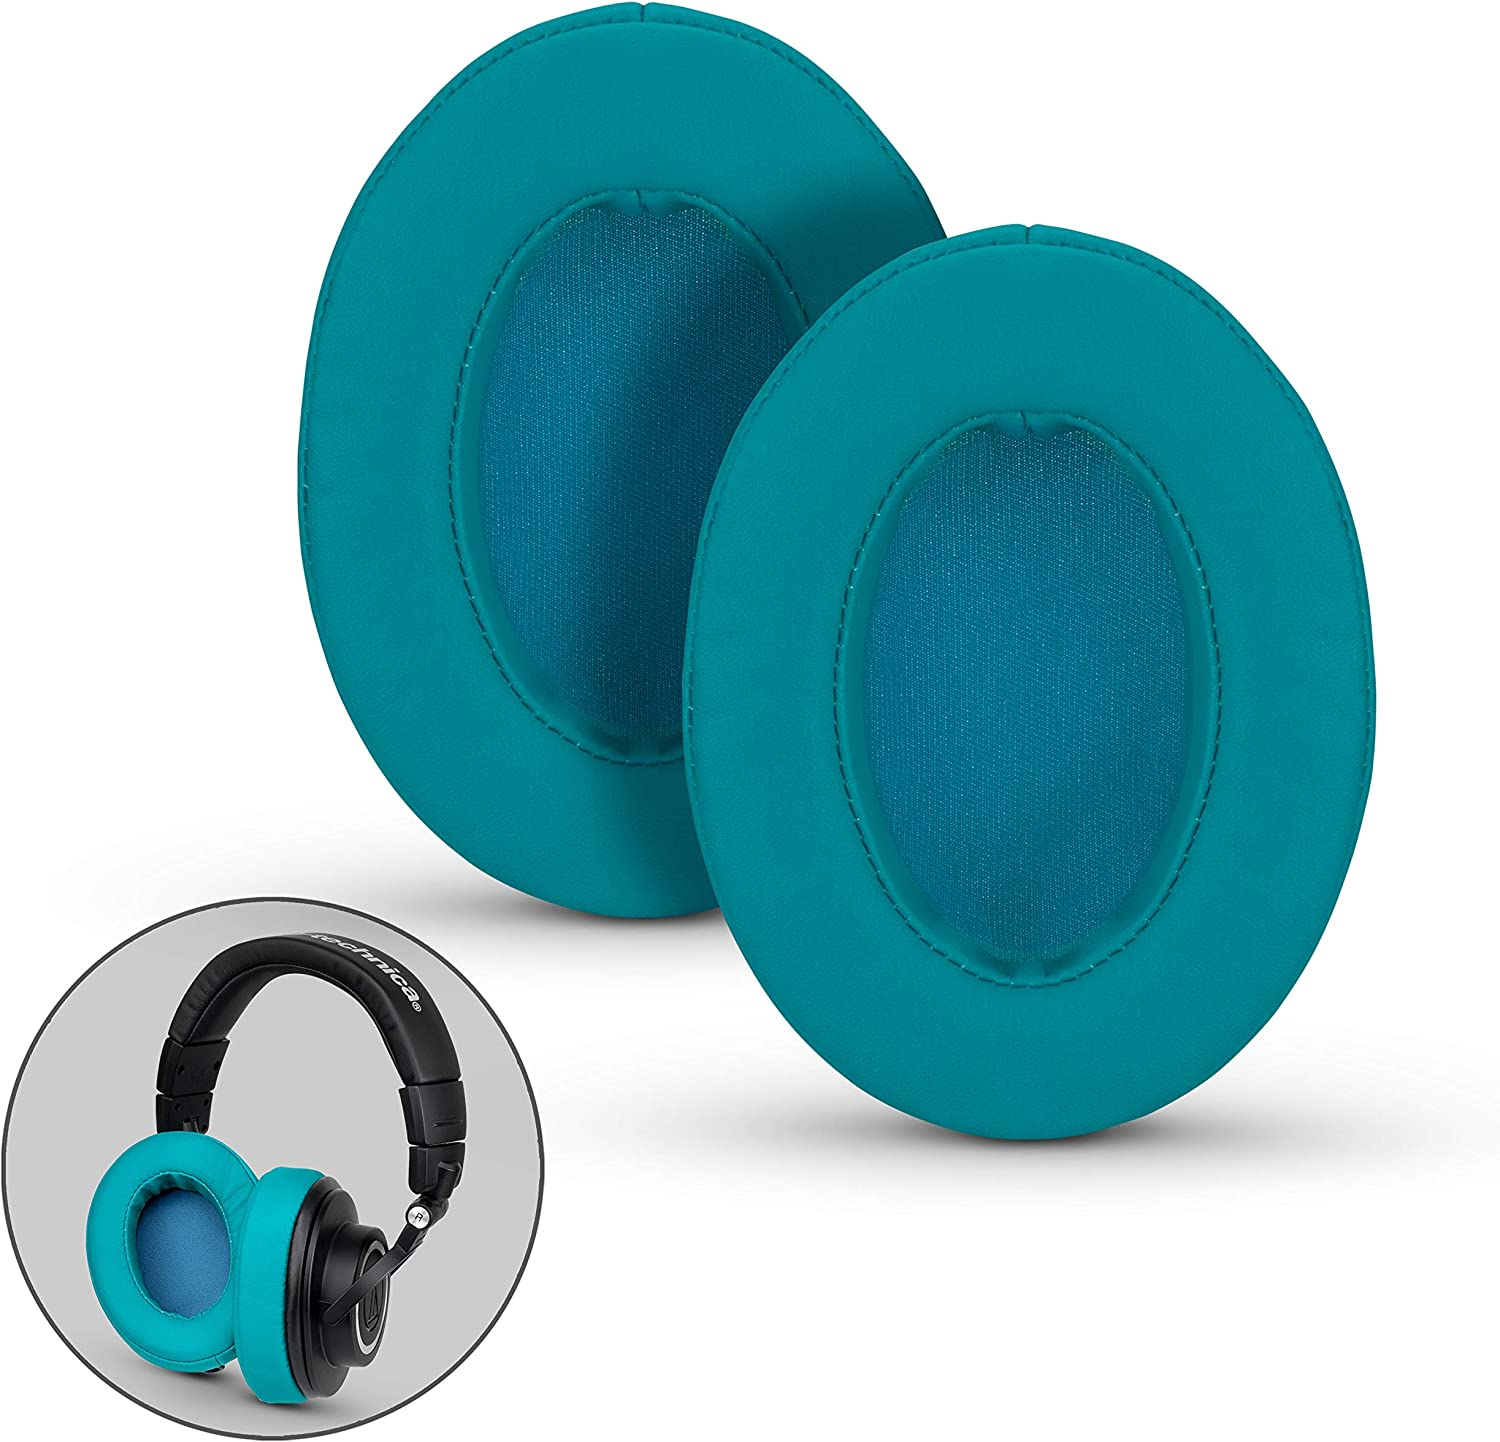 Brainwavz Ear Pads for ATH M50X, M50XBT, M40X, M30X, HyperX, SHURE, Turtle Beach, AKG, ATH, Philips, JBL, Fostex Replacement Memory Foam Earpads & Fits Many Headphones (See List), Turquoise